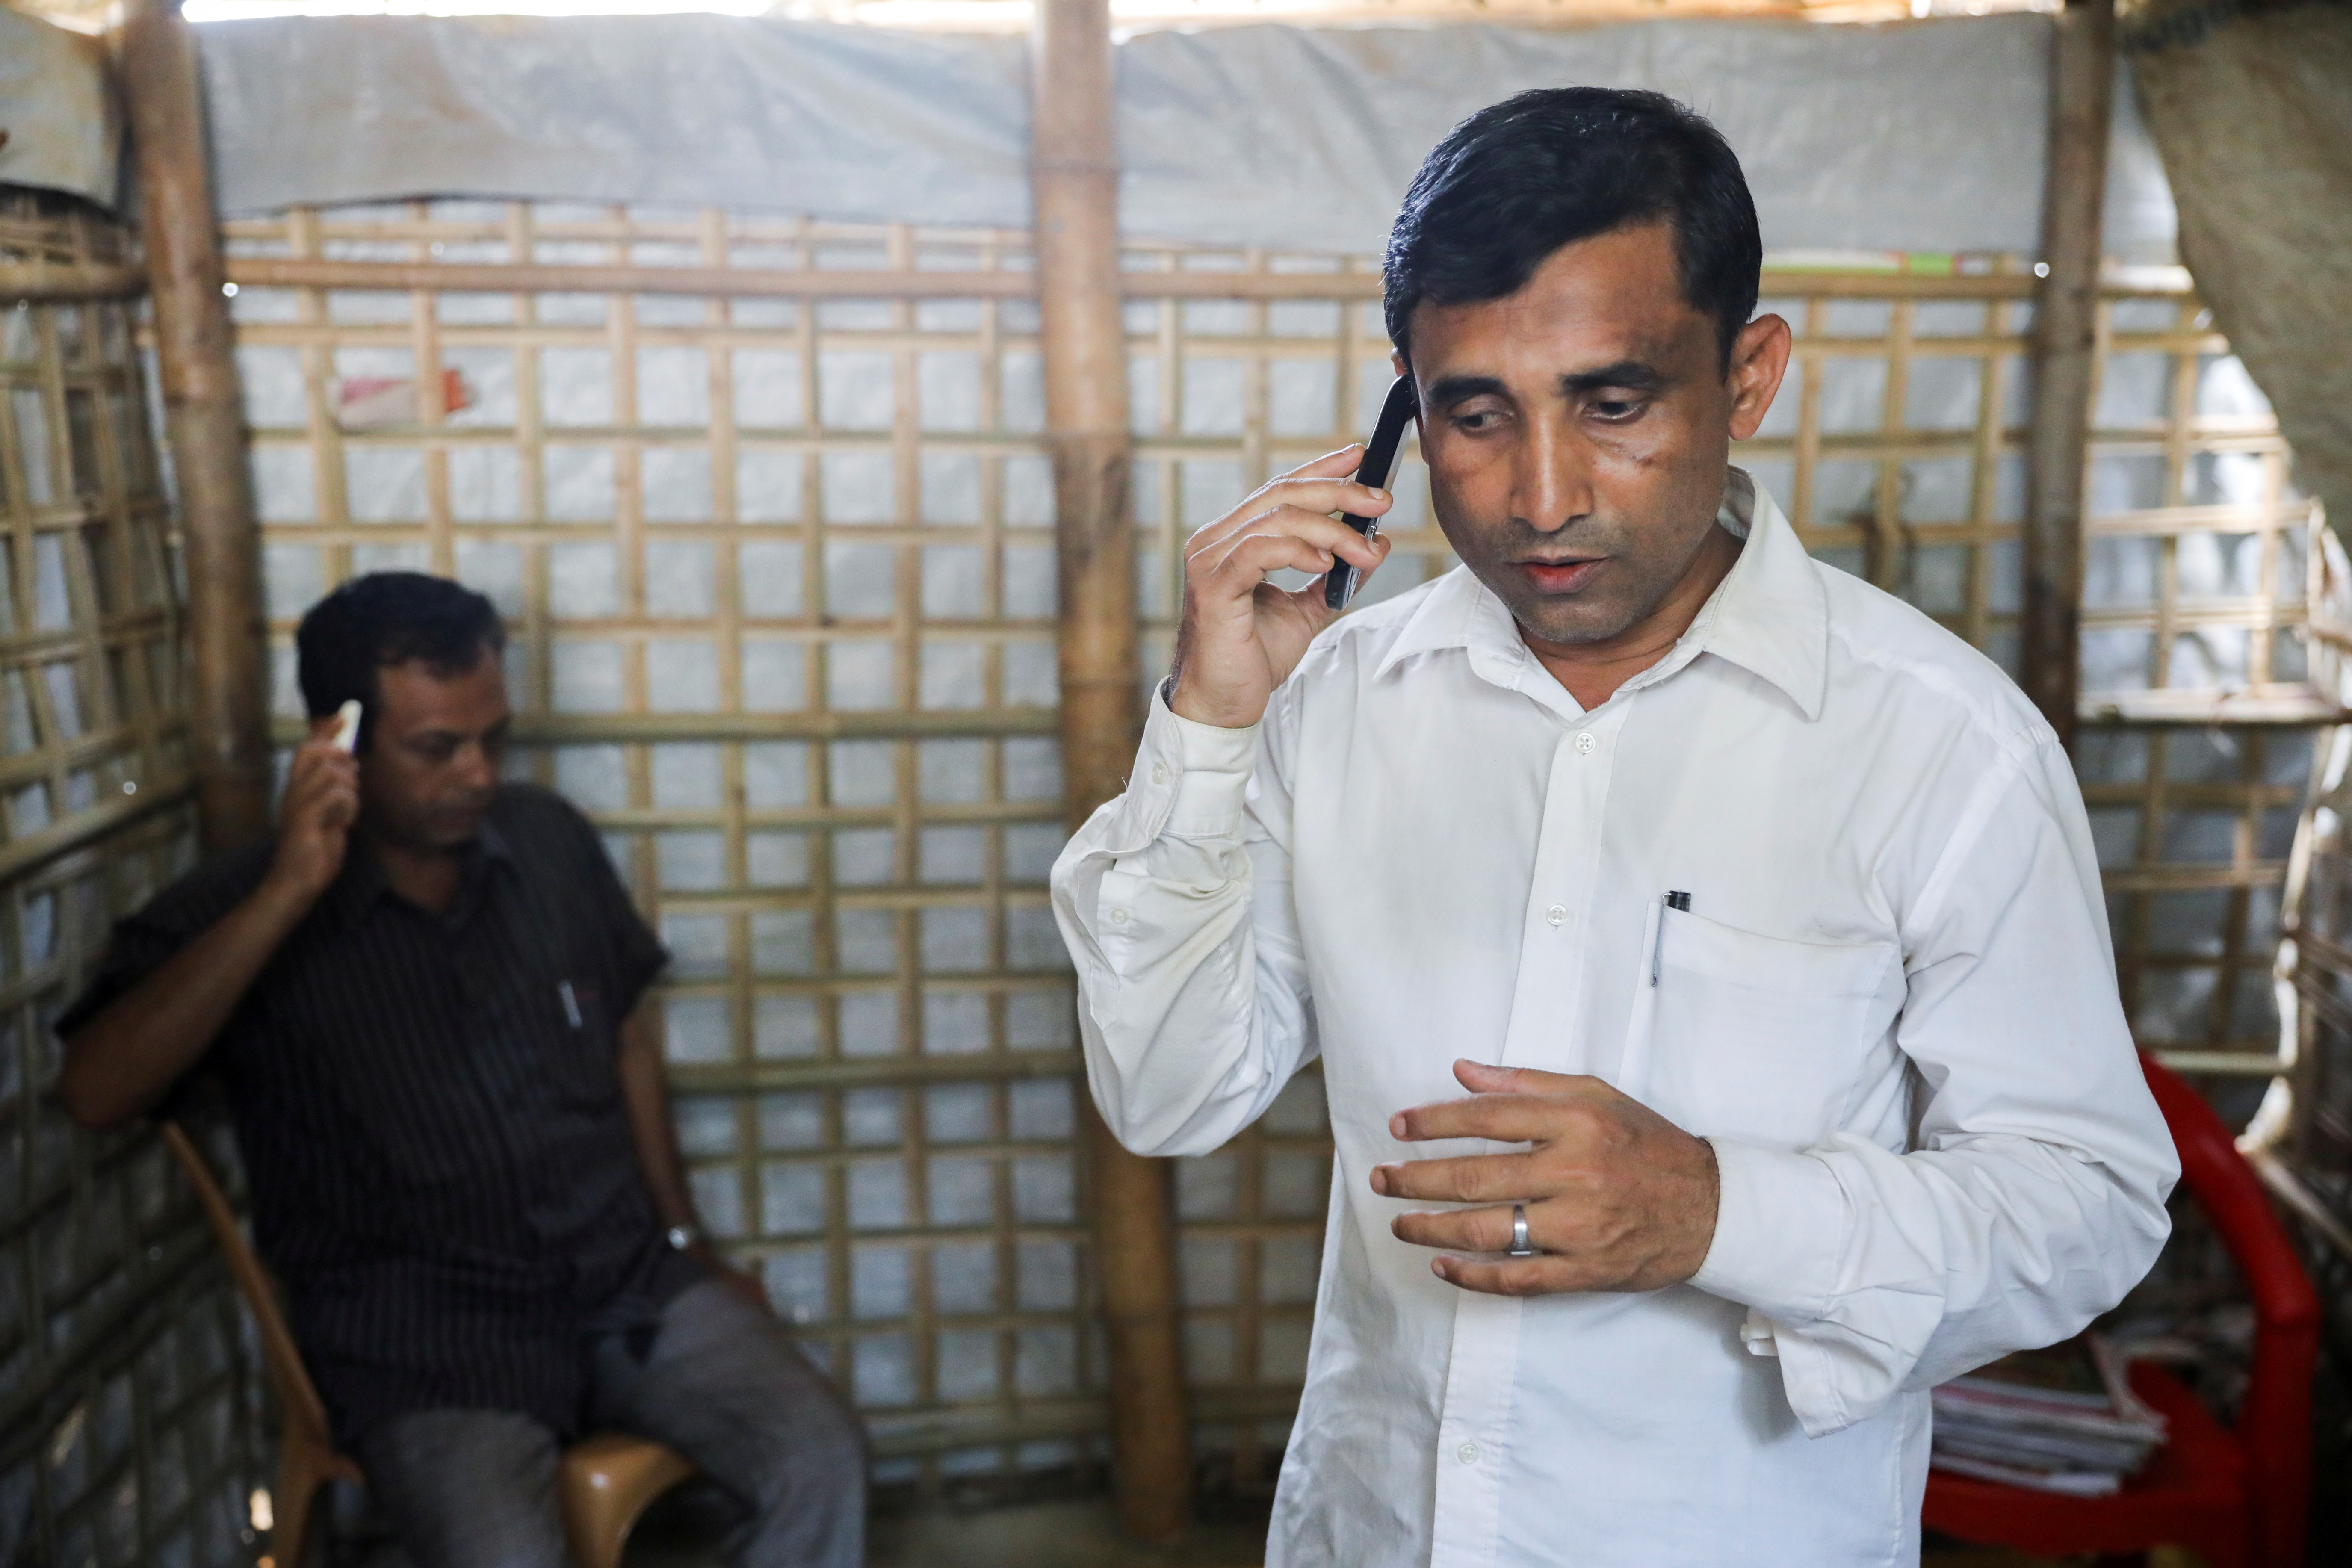 Mohib Ullah, a Rohingya Muslim leader from the Arakan Rohingya Society for Peace and Human Rights, speaks on a phone at his residence in Kutupalong refugee camp in Ukhiya, Cox's Bazar, Bangladesh, April 21, 2018. Picture taken April 21, 2018. REUTERS/Mohammad Ponir Hossain/File Photo